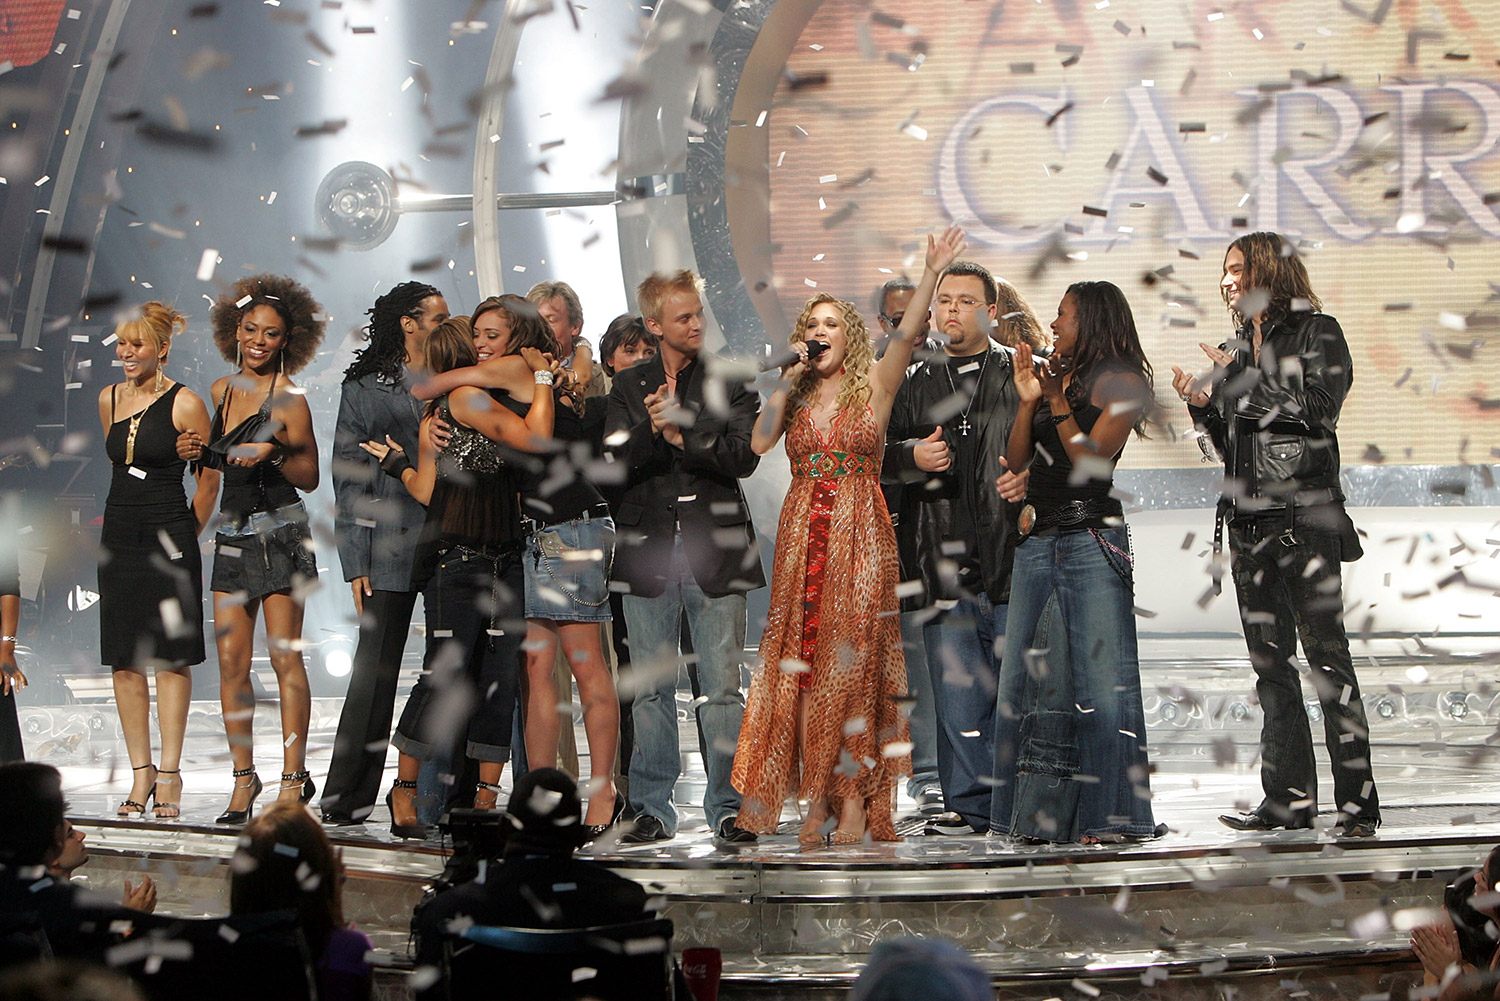 Carrie Underwood (center) on American Idol in 2005 KEVIN WINTER/GETTY IMAGES